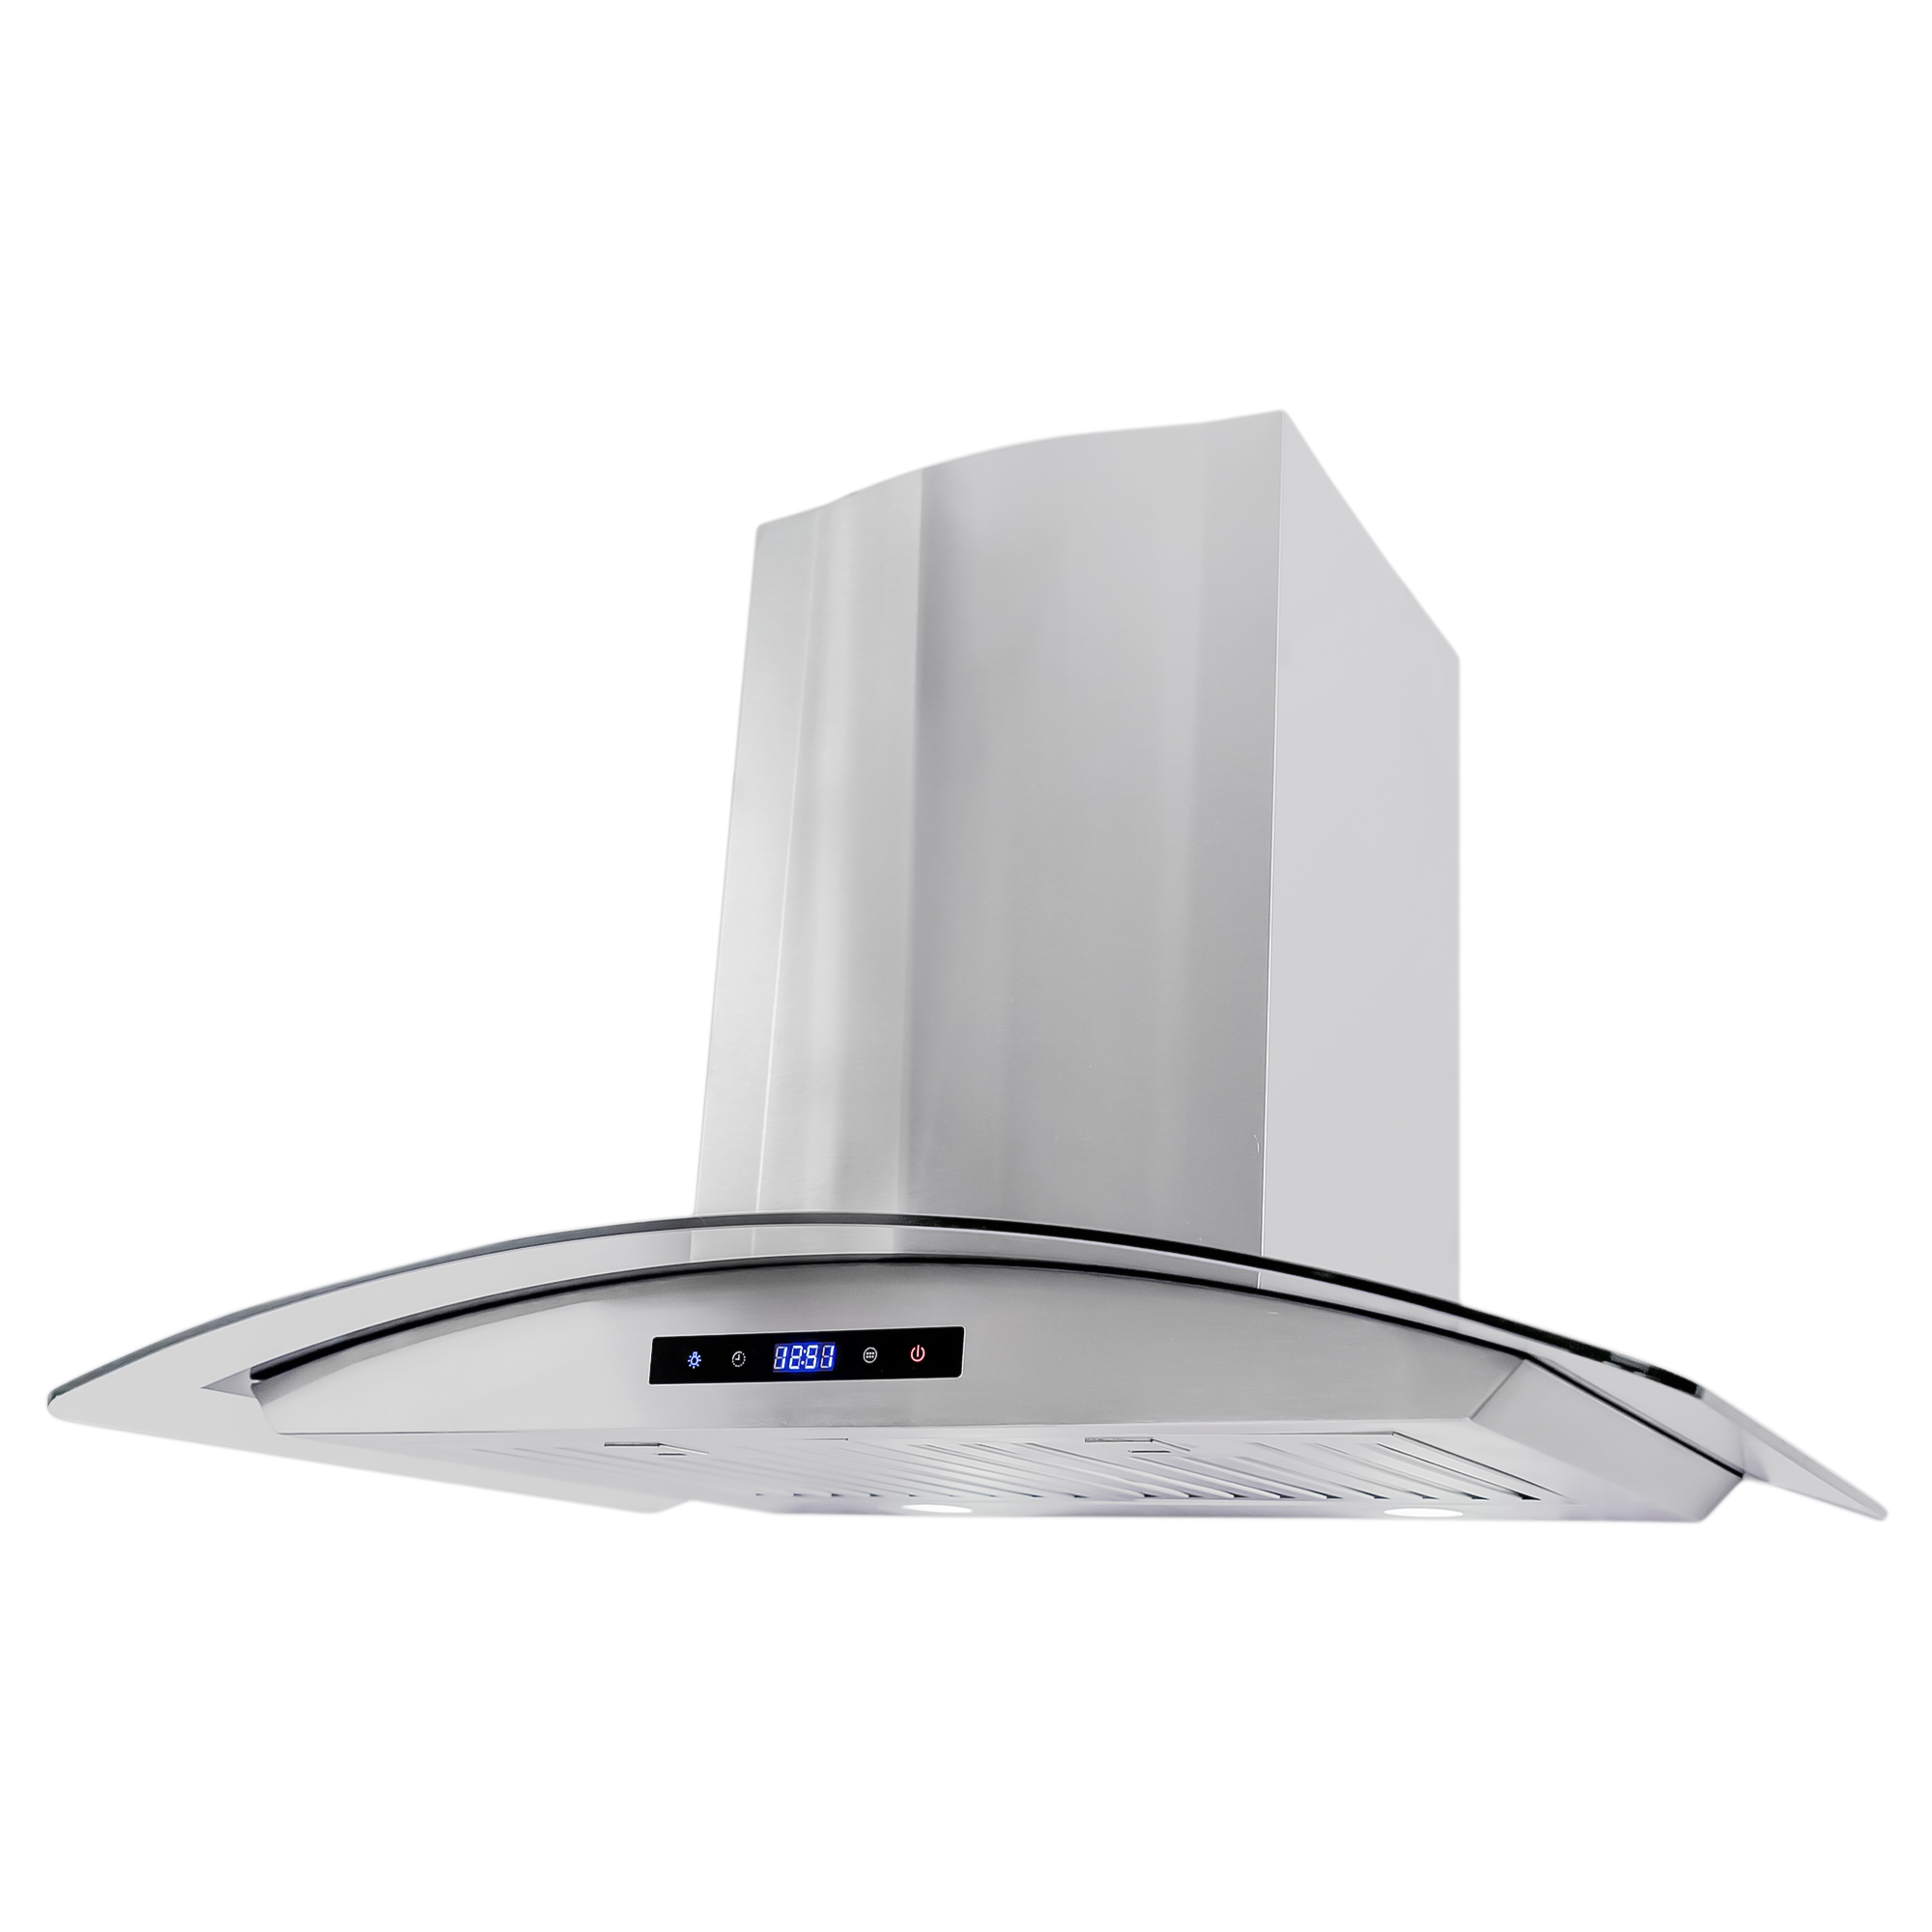 wall mount range hood 30 in wall mount range with touch controls cosmo 29480